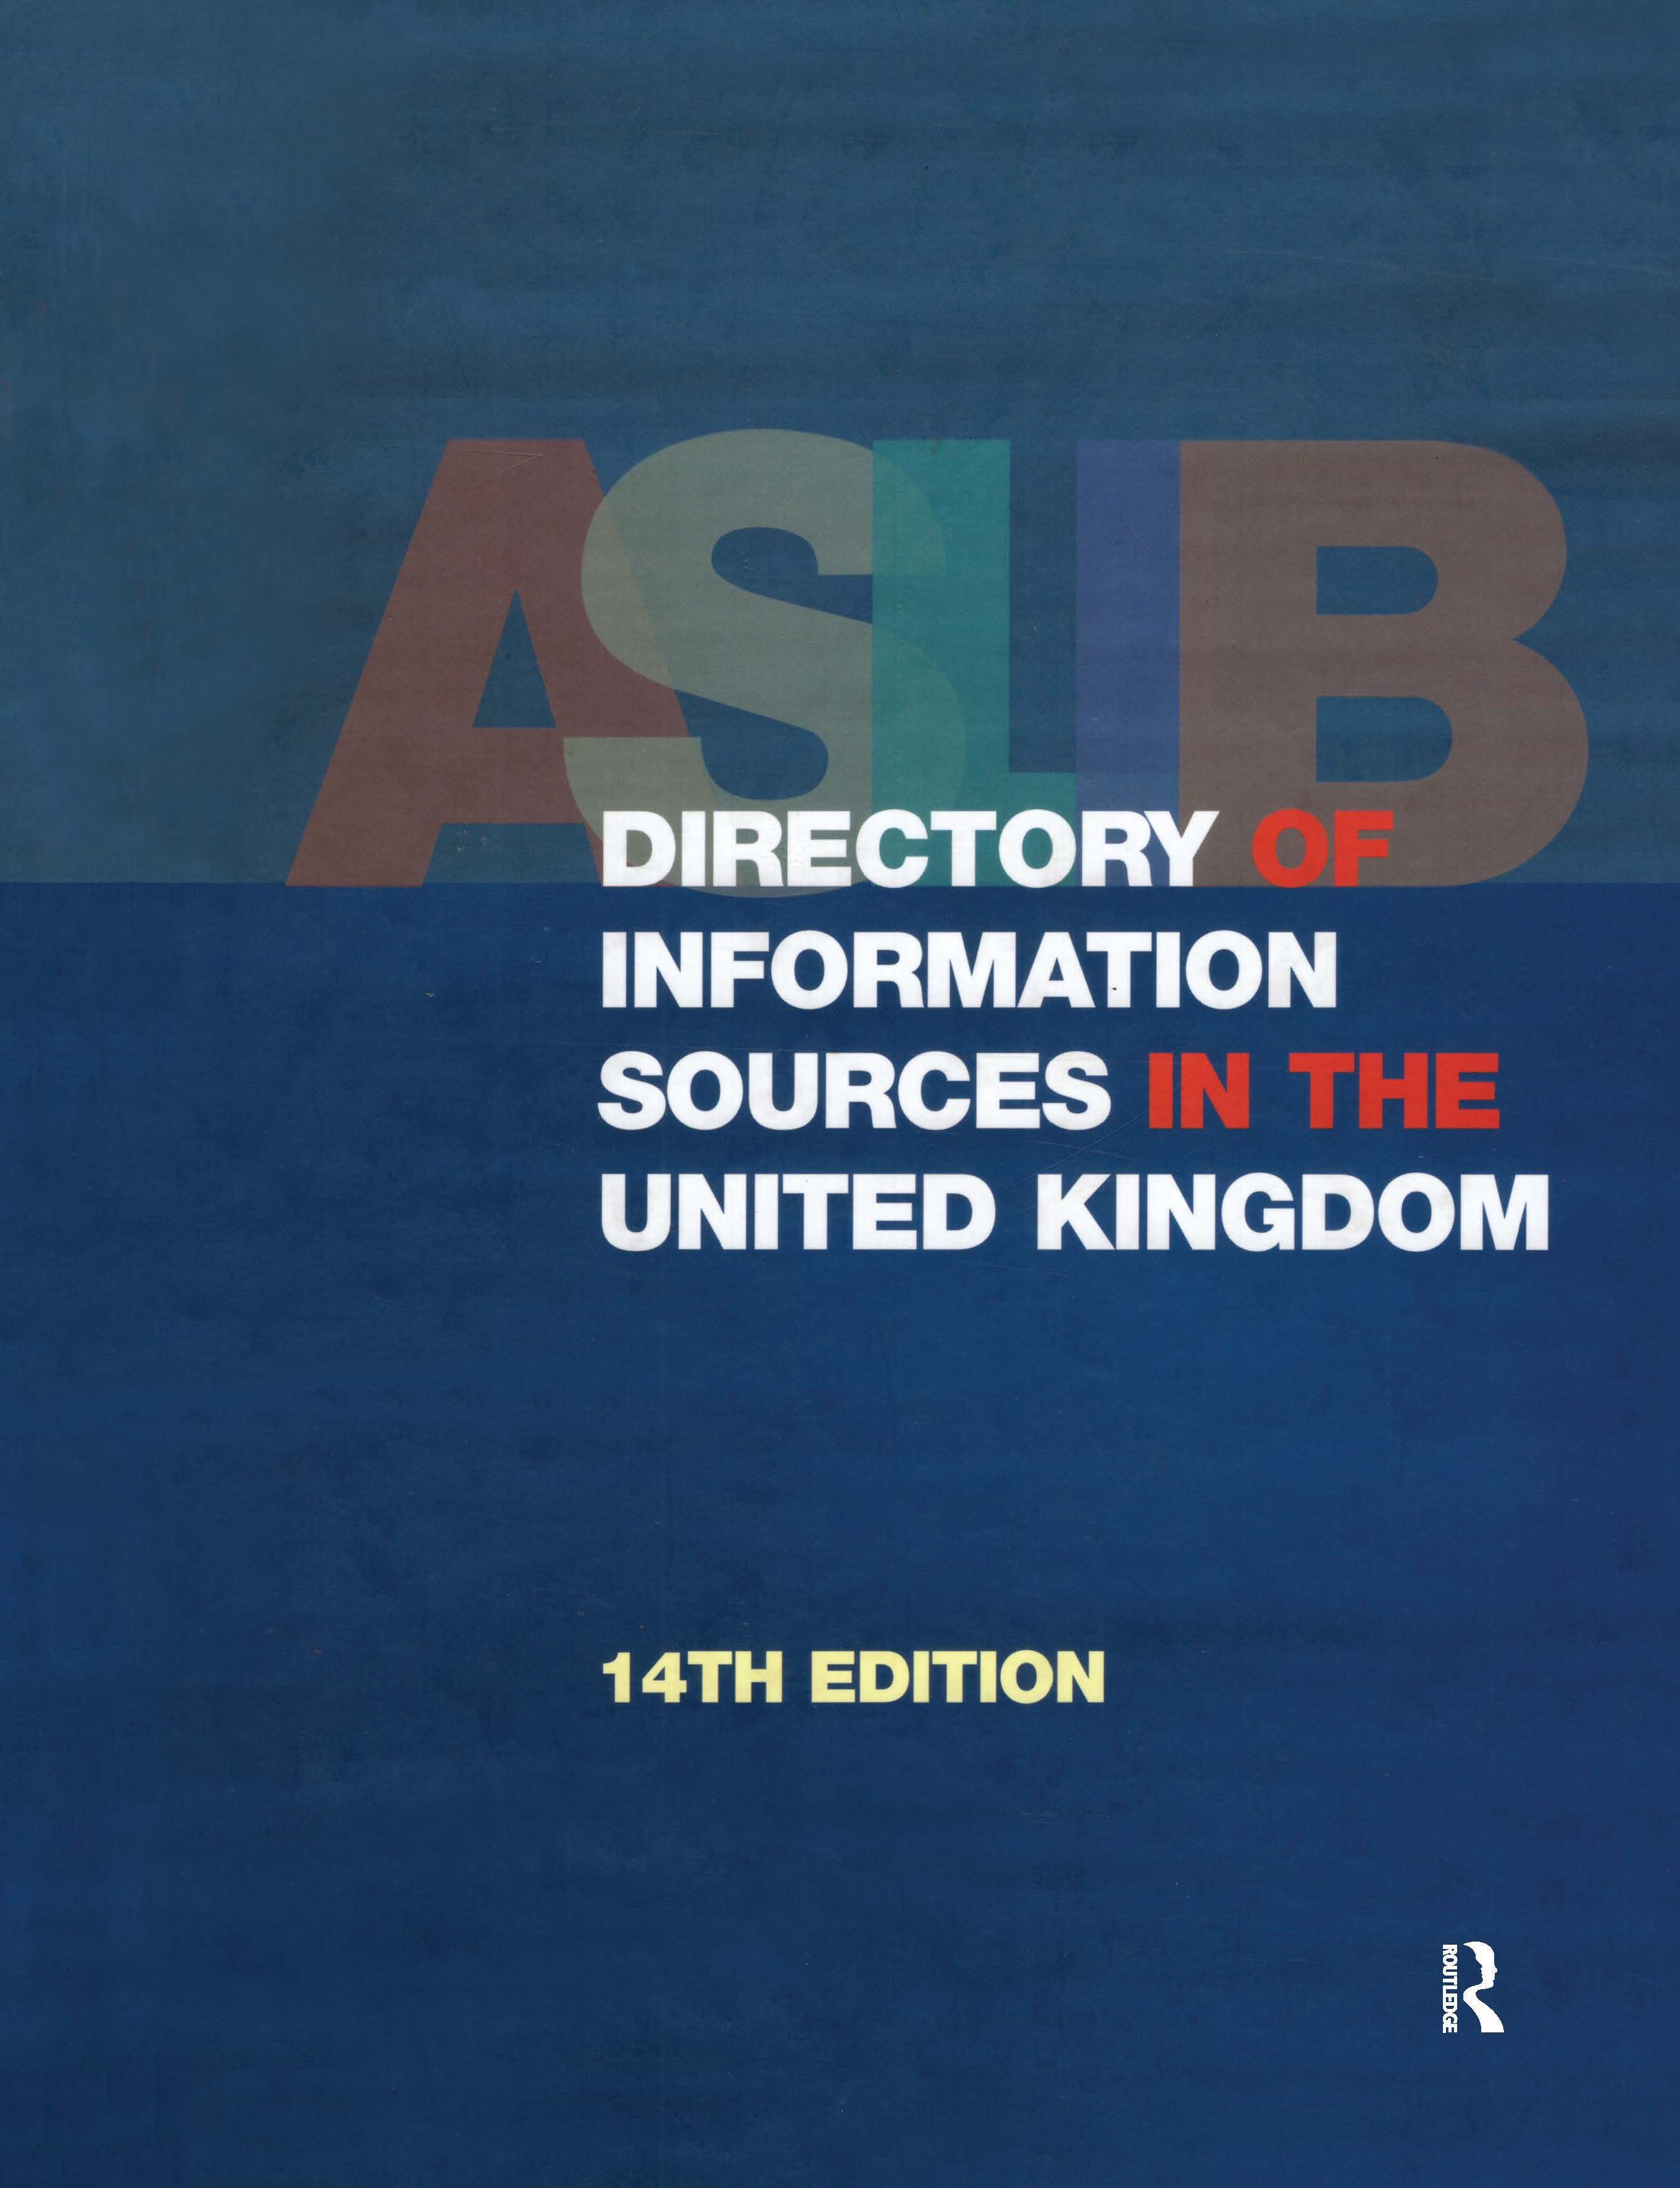 The Aslib Directory of Information Sources in the United Kingdom: 14th Edition (Hardback) book cover